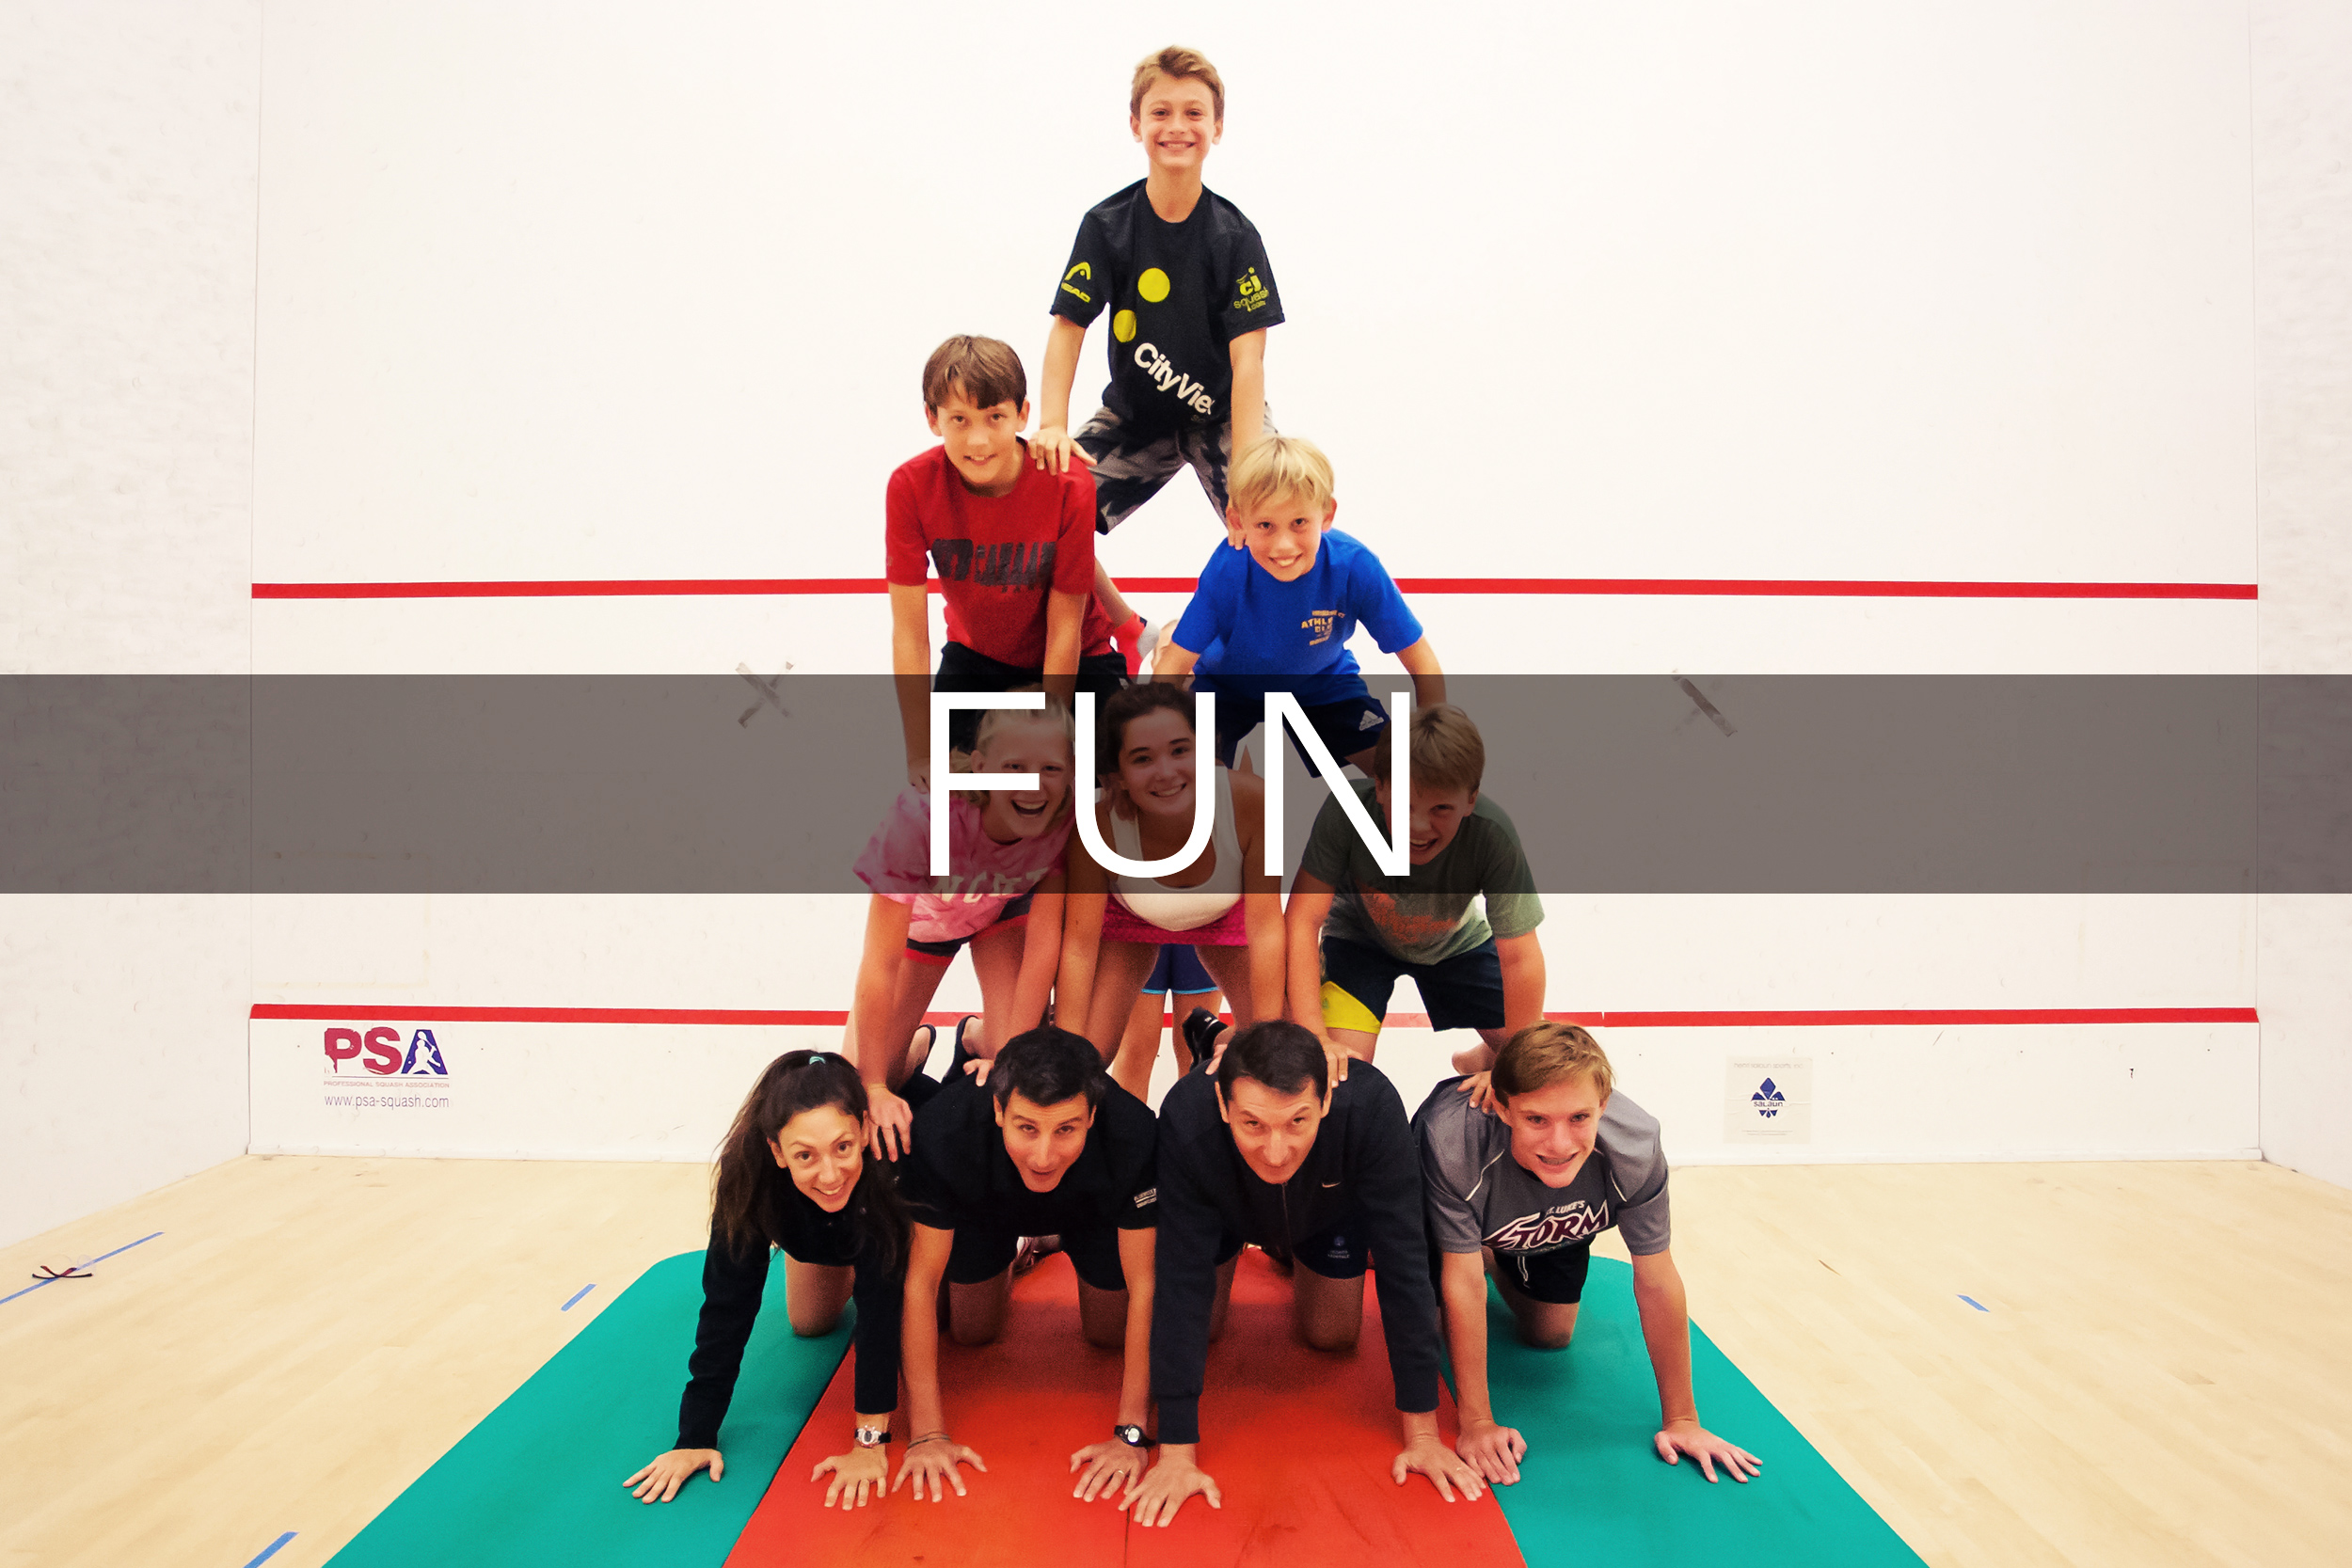 201508SquashCamp-0937p_1mf-2500-FUN-ed.jpg